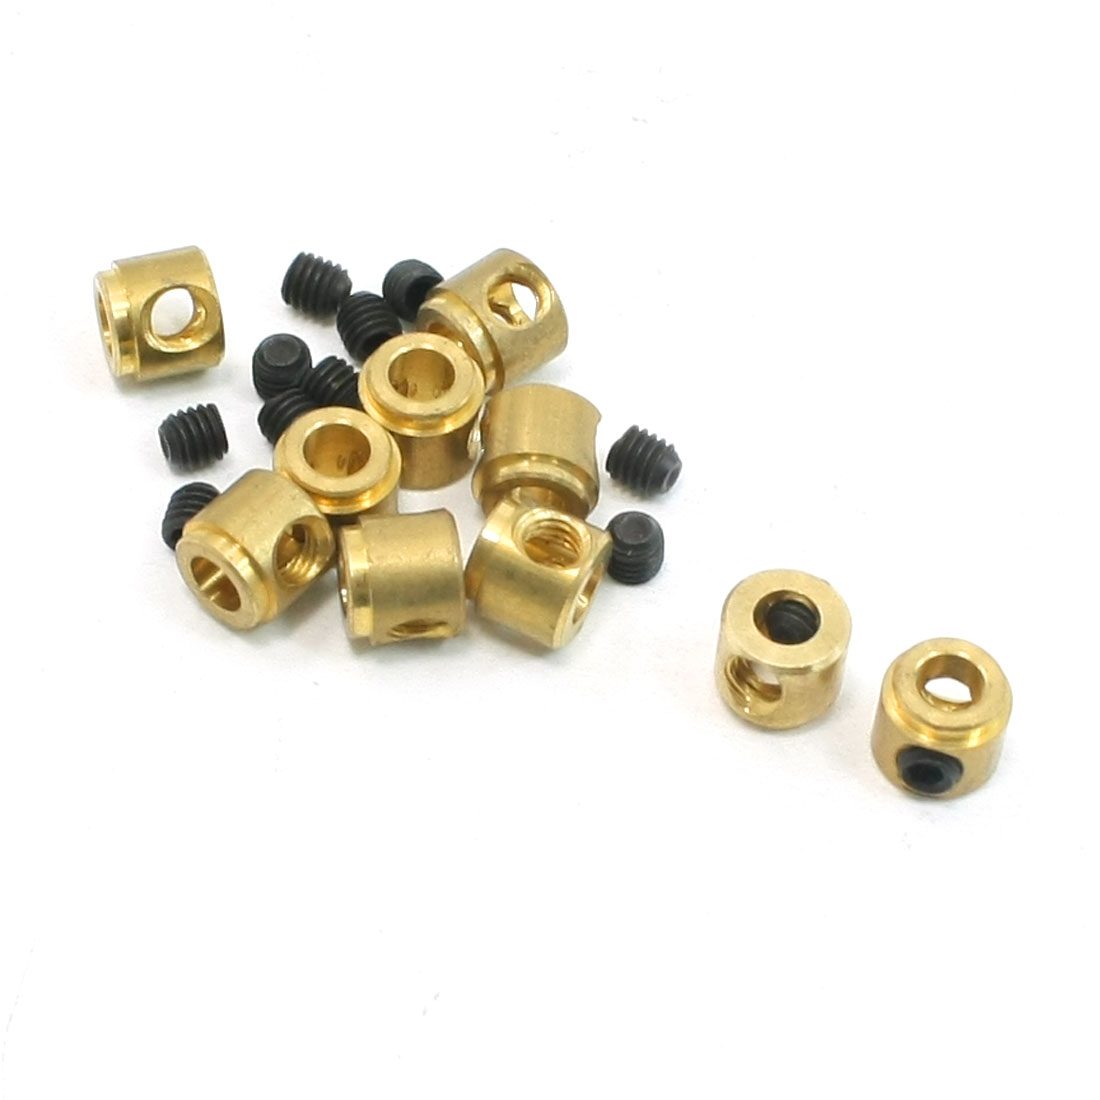 10 Pcs Gold Tone Brass Metal DIY RC Model Plane Block Parts